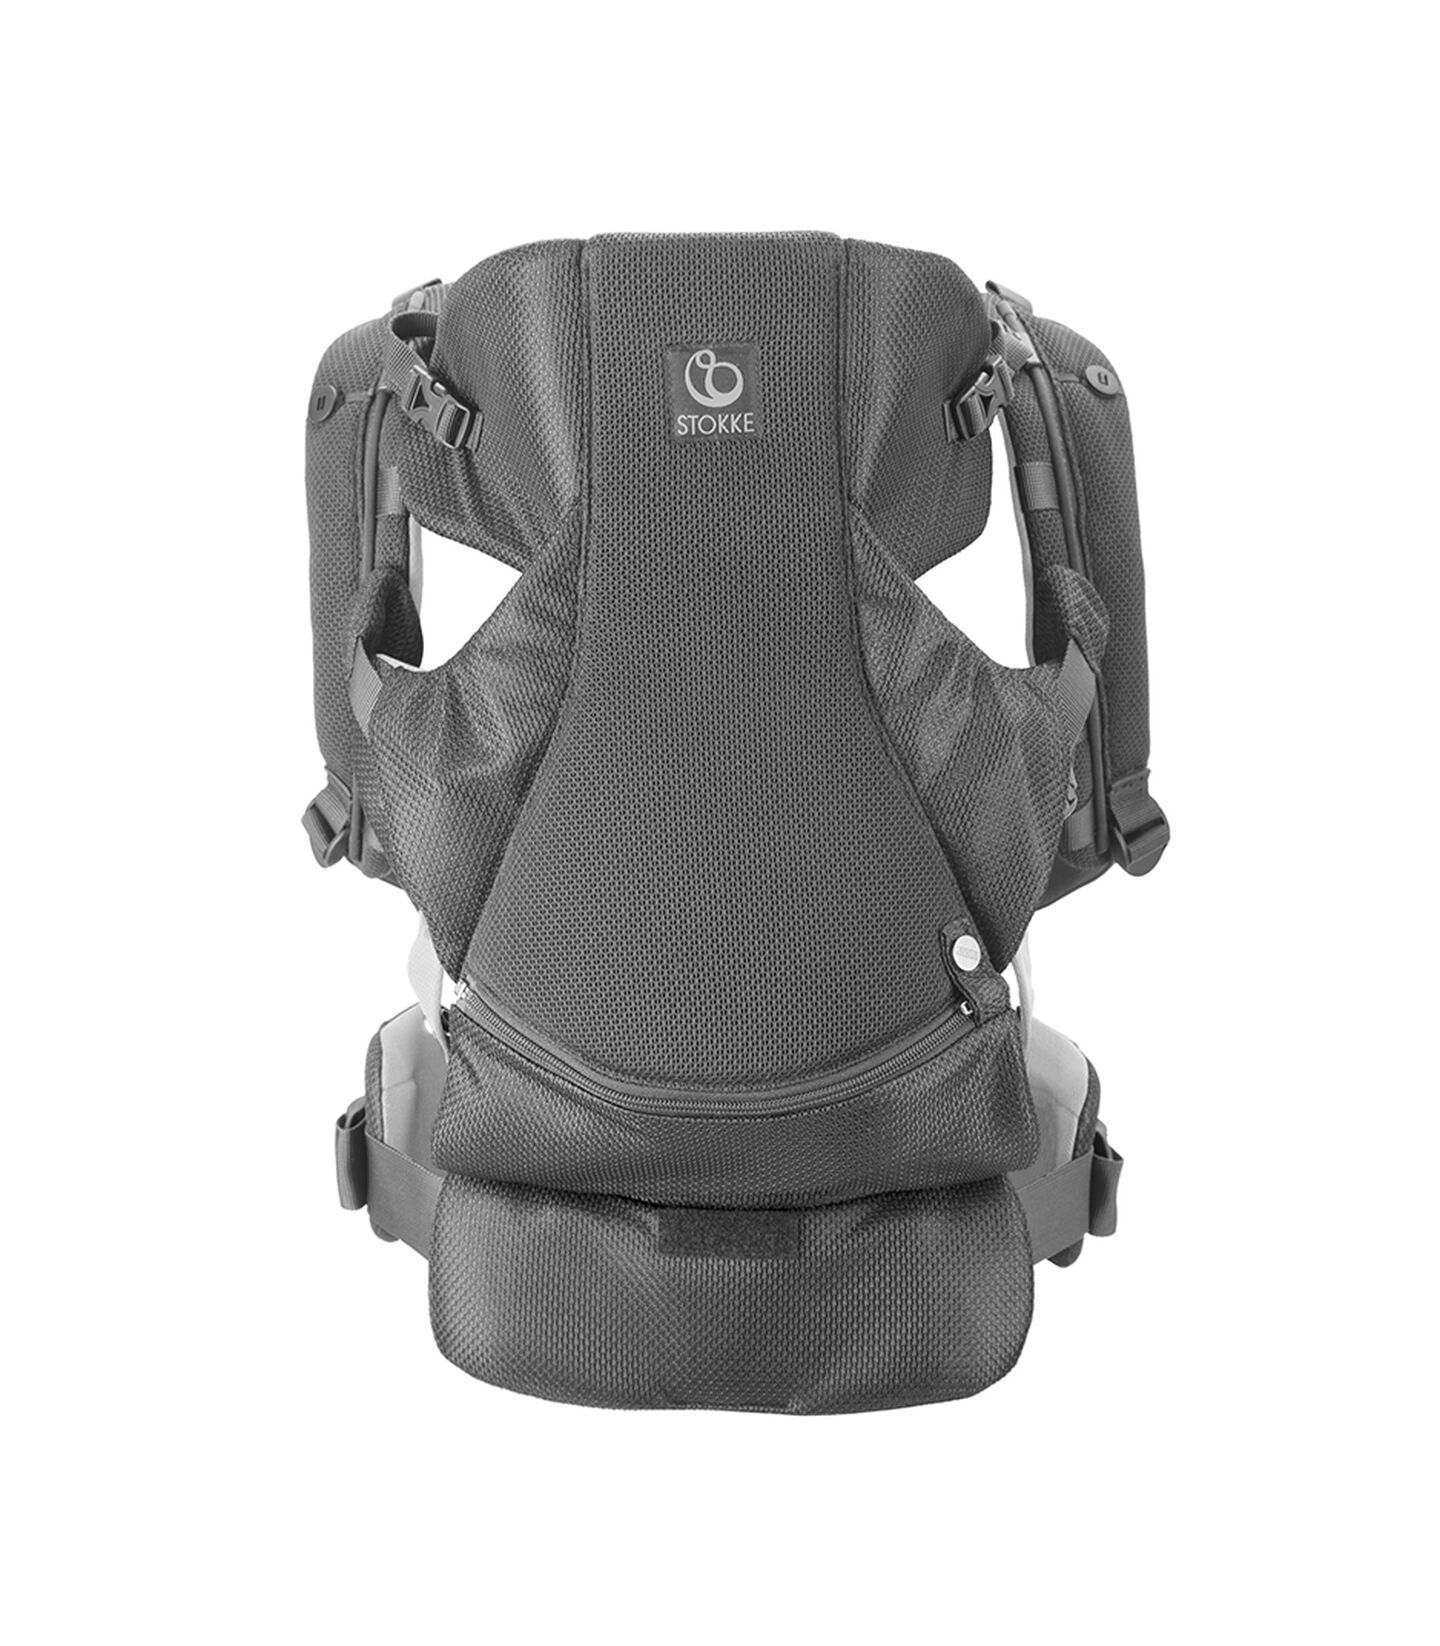 Stokke® MyCarrier™ Mochila Frontal y Dorsal Gris Mesh, Gris malla, mainview view 2